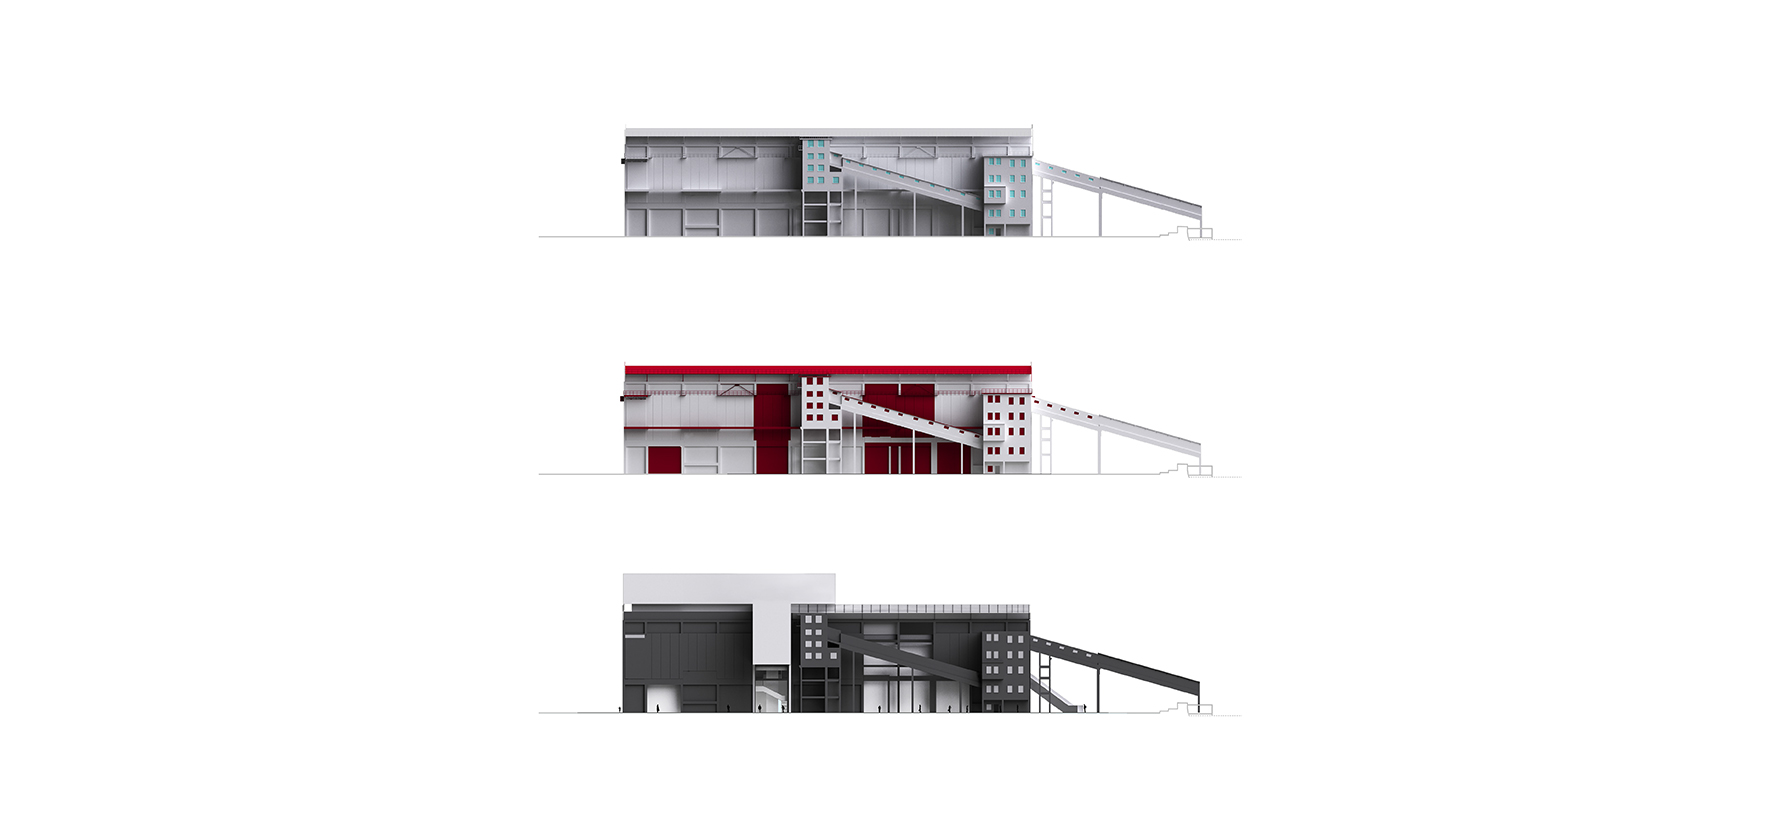 waa Museum of Contemporary Art WestBund renovation street view 未觉建筑 西岸当代美术馆 改造